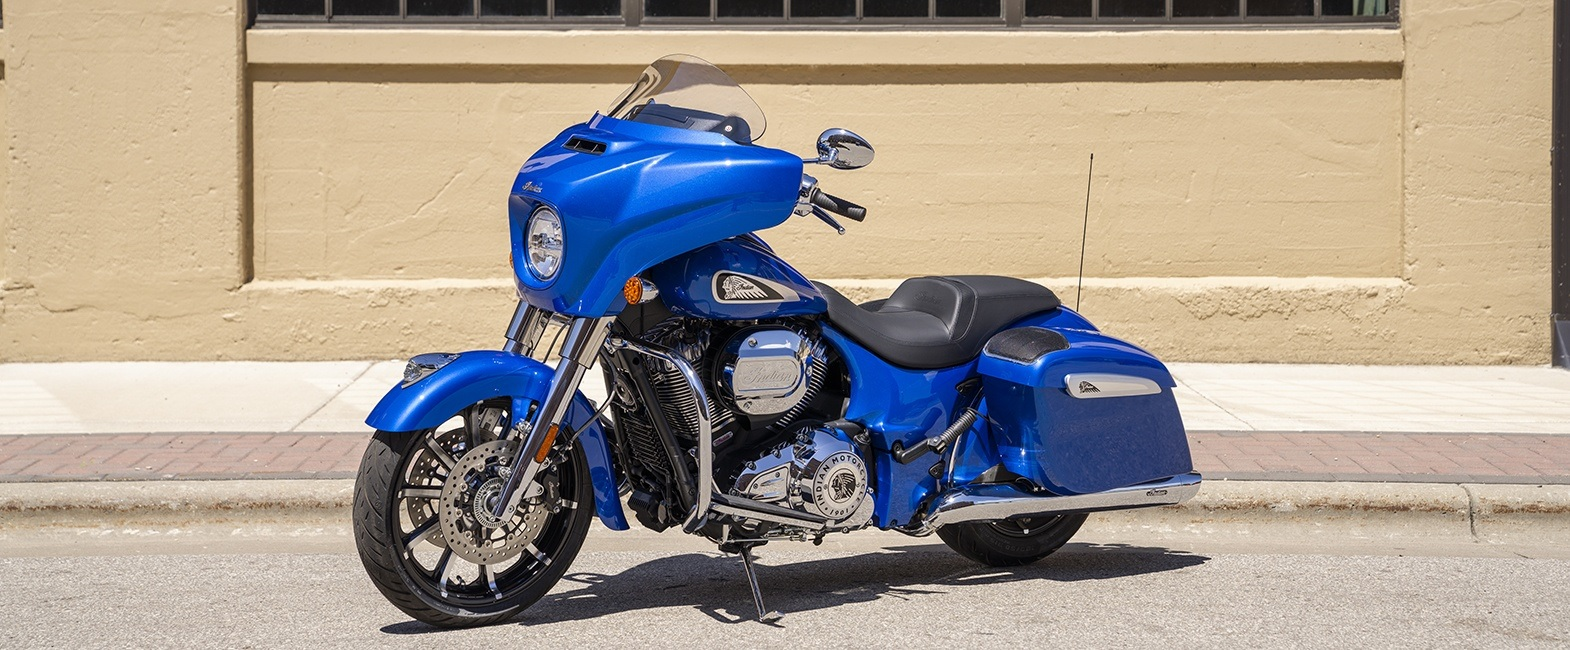 2021 Indian Chieftain Limited